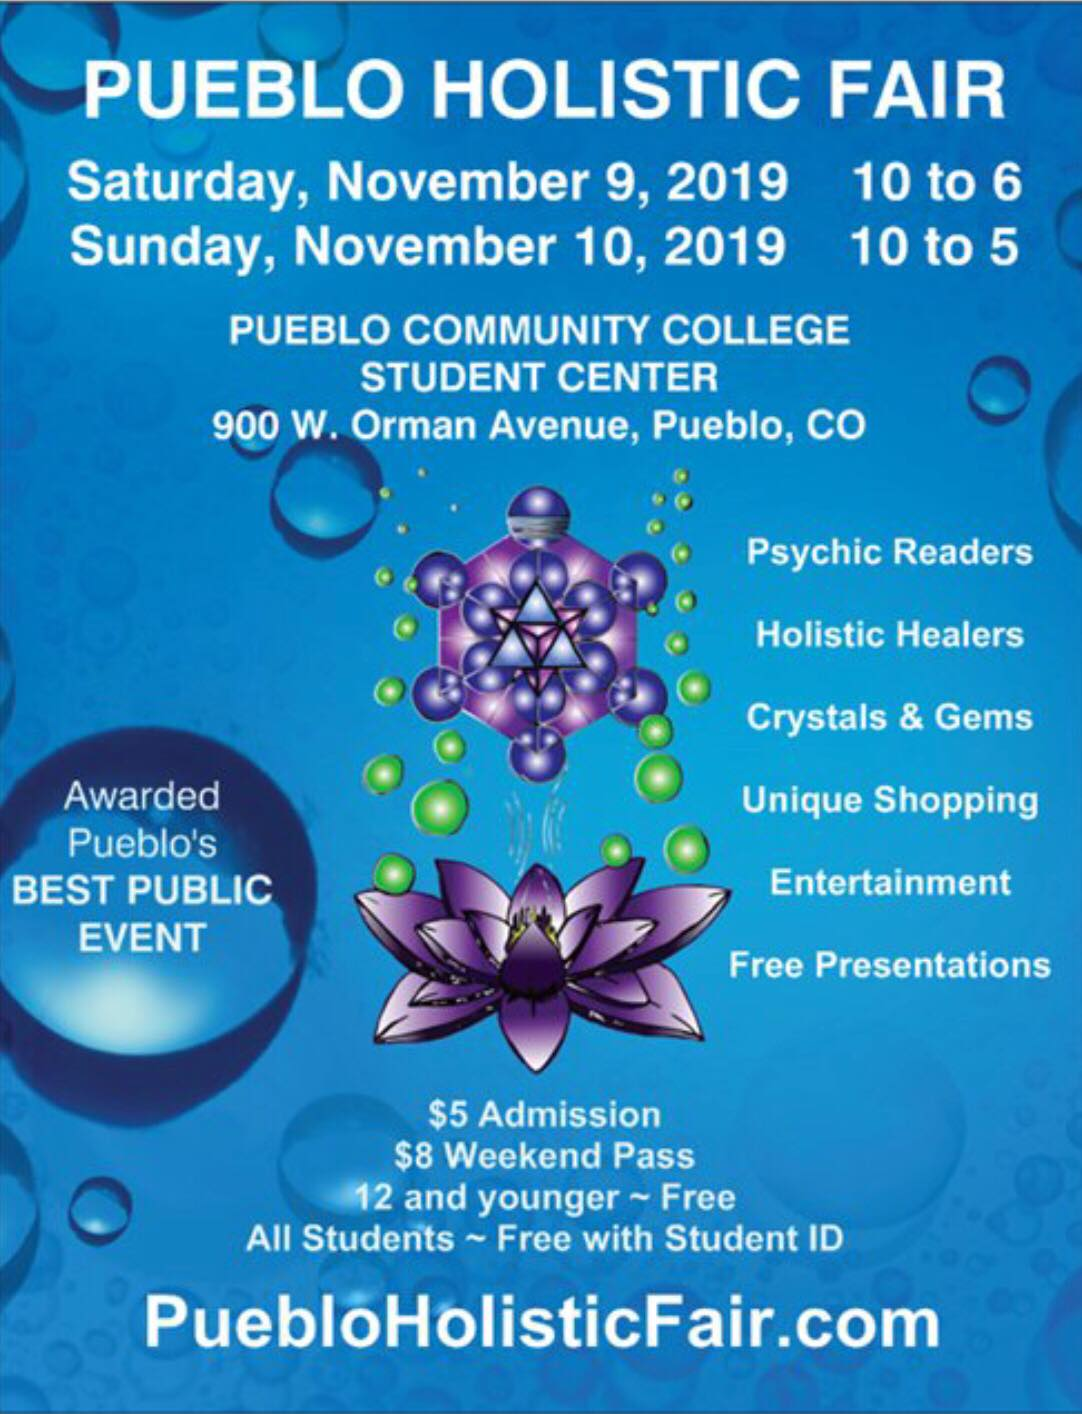 Welcome to the Pueblo Holistic Fair - Home